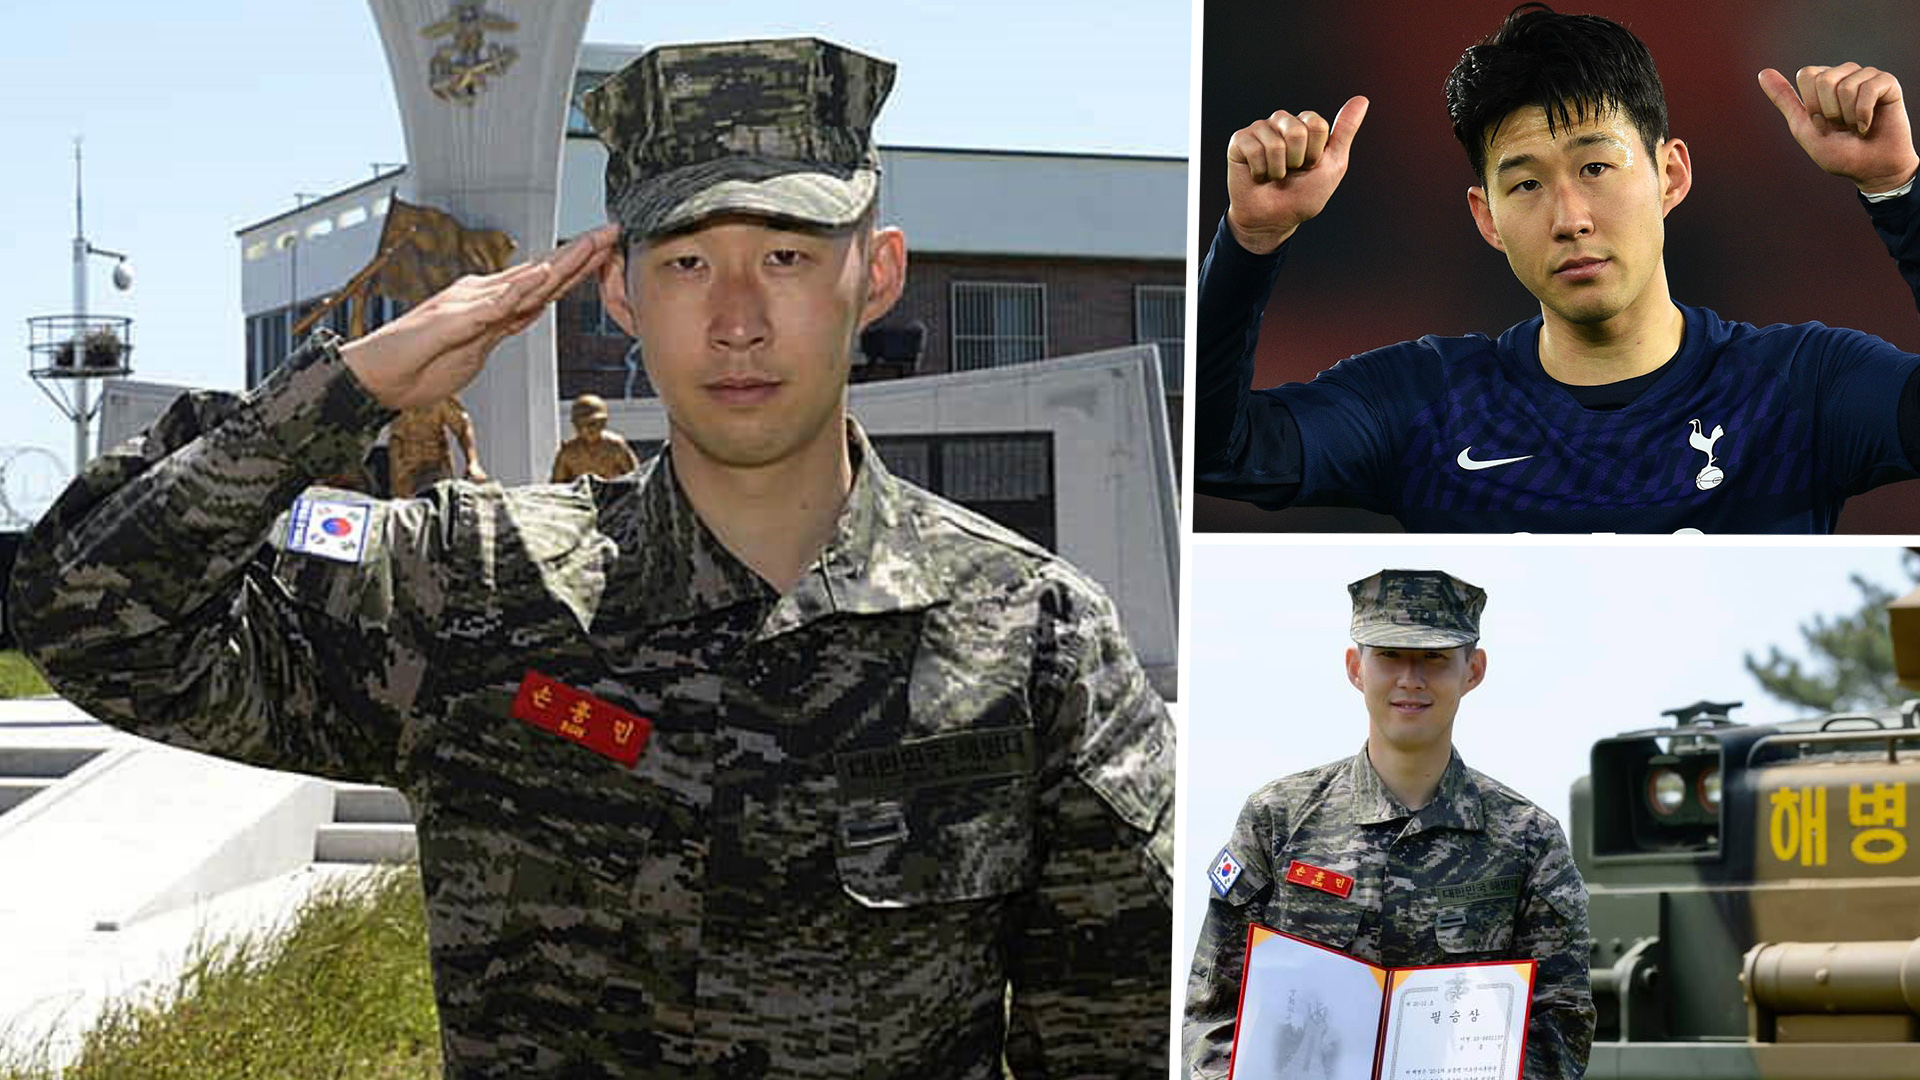 Tottenham Star Son Heung-min Has Completed Military Service (See Pictures)